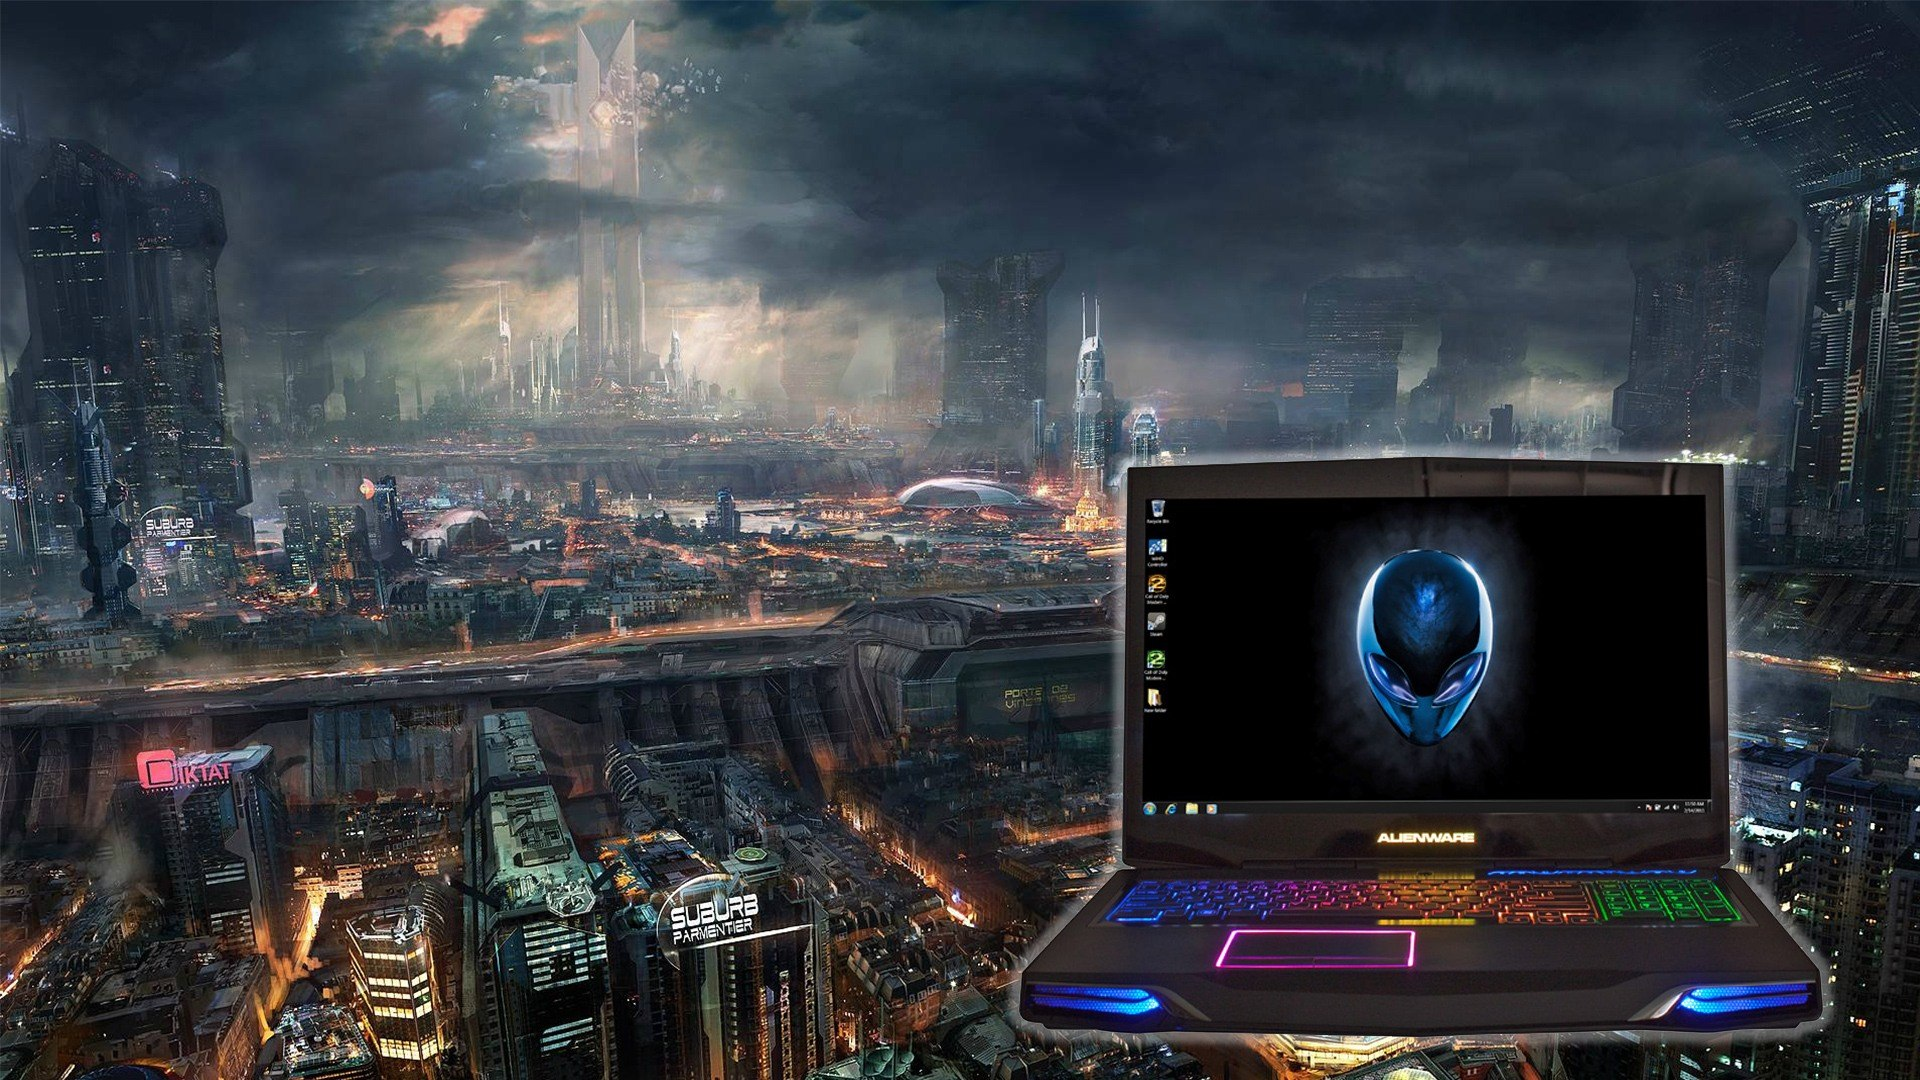 How to choose the best gaming laptop in 2019 pc game haven - Fantasy wallpaper 3440x1440 ...